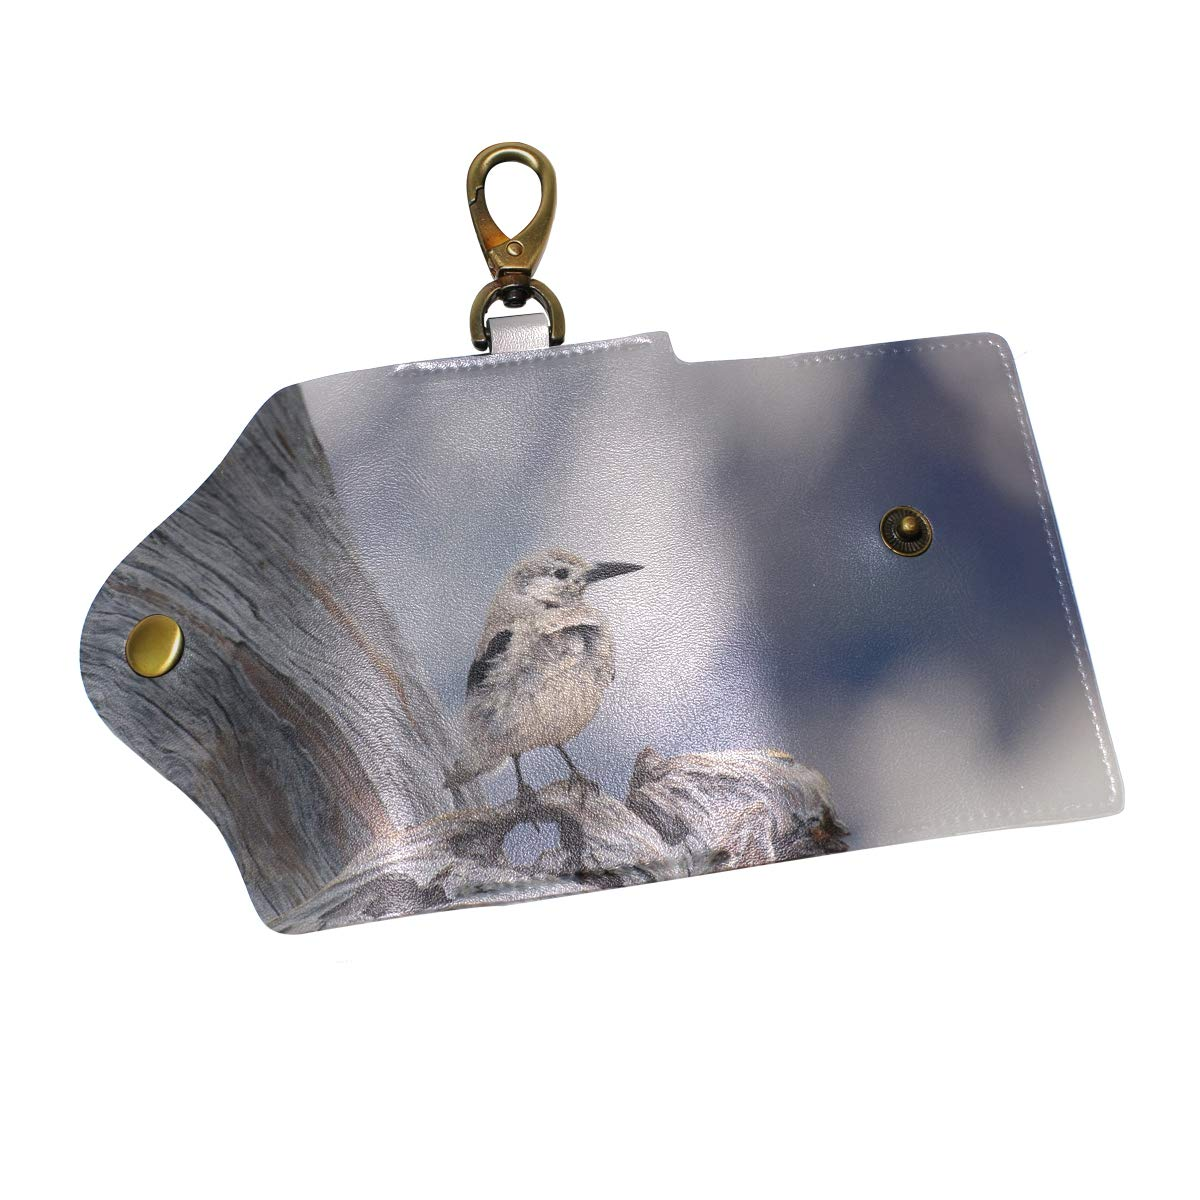 KEAKIA Bird Leather Key Case Wallets Tri-fold Key Holder Keychains with 6 Hooks 2 Slot Snap Closure for Men Women